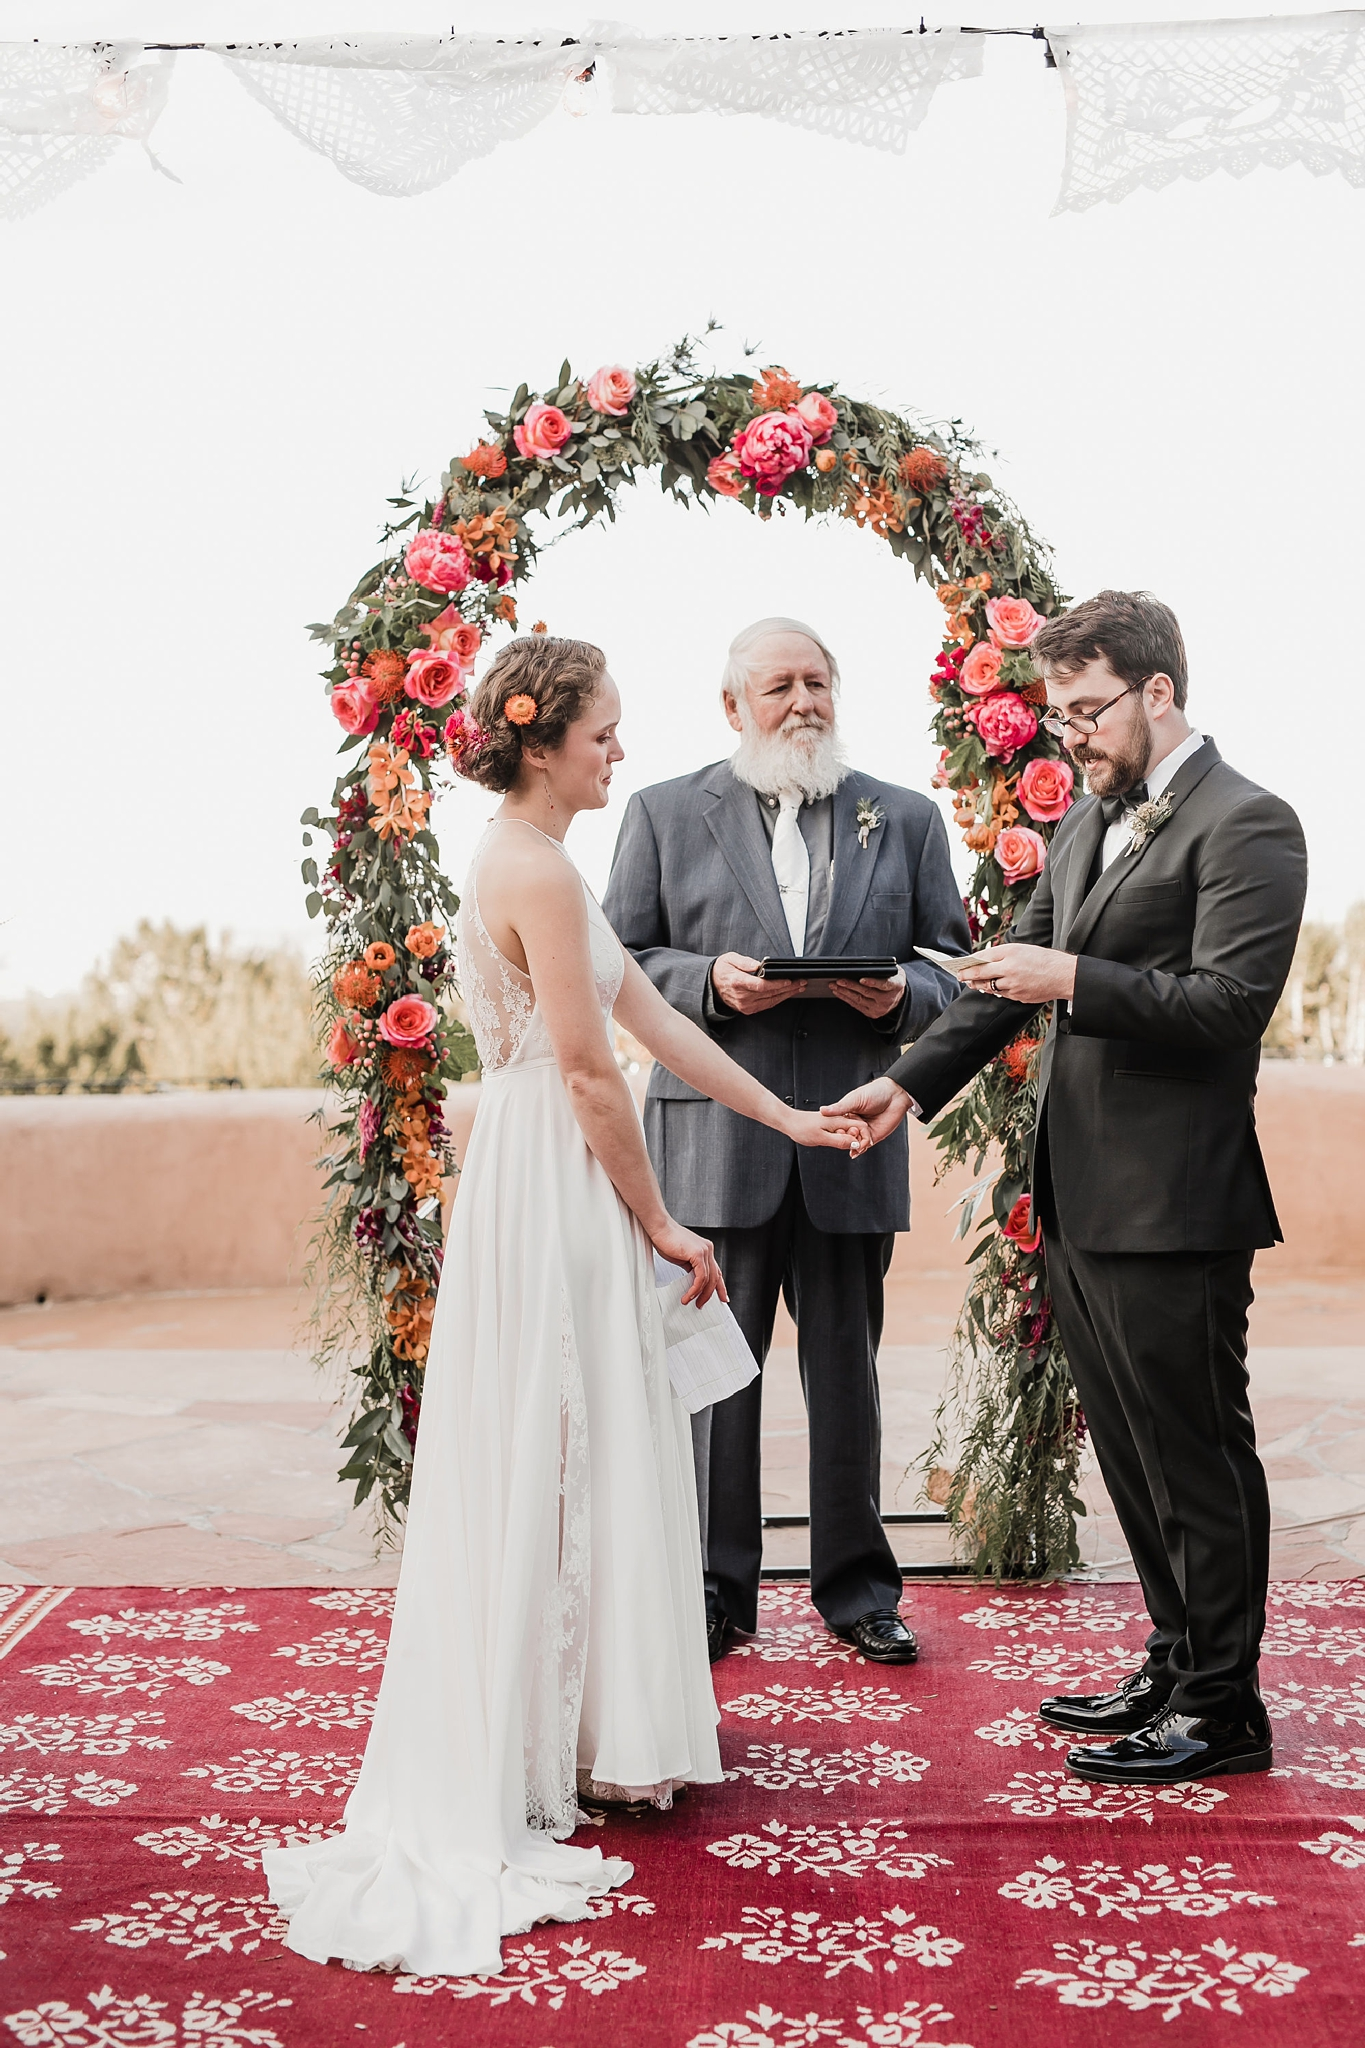 Alicia+lucia+photography+-+albuquerque+wedding+photographer+-+santa+fe+wedding+photography+-+new+mexico+wedding+photographer+-+new+mexico+wedding+-+wedding+vows+-+writing+your+own+vows+-+wedding+inspo_0033.jpg